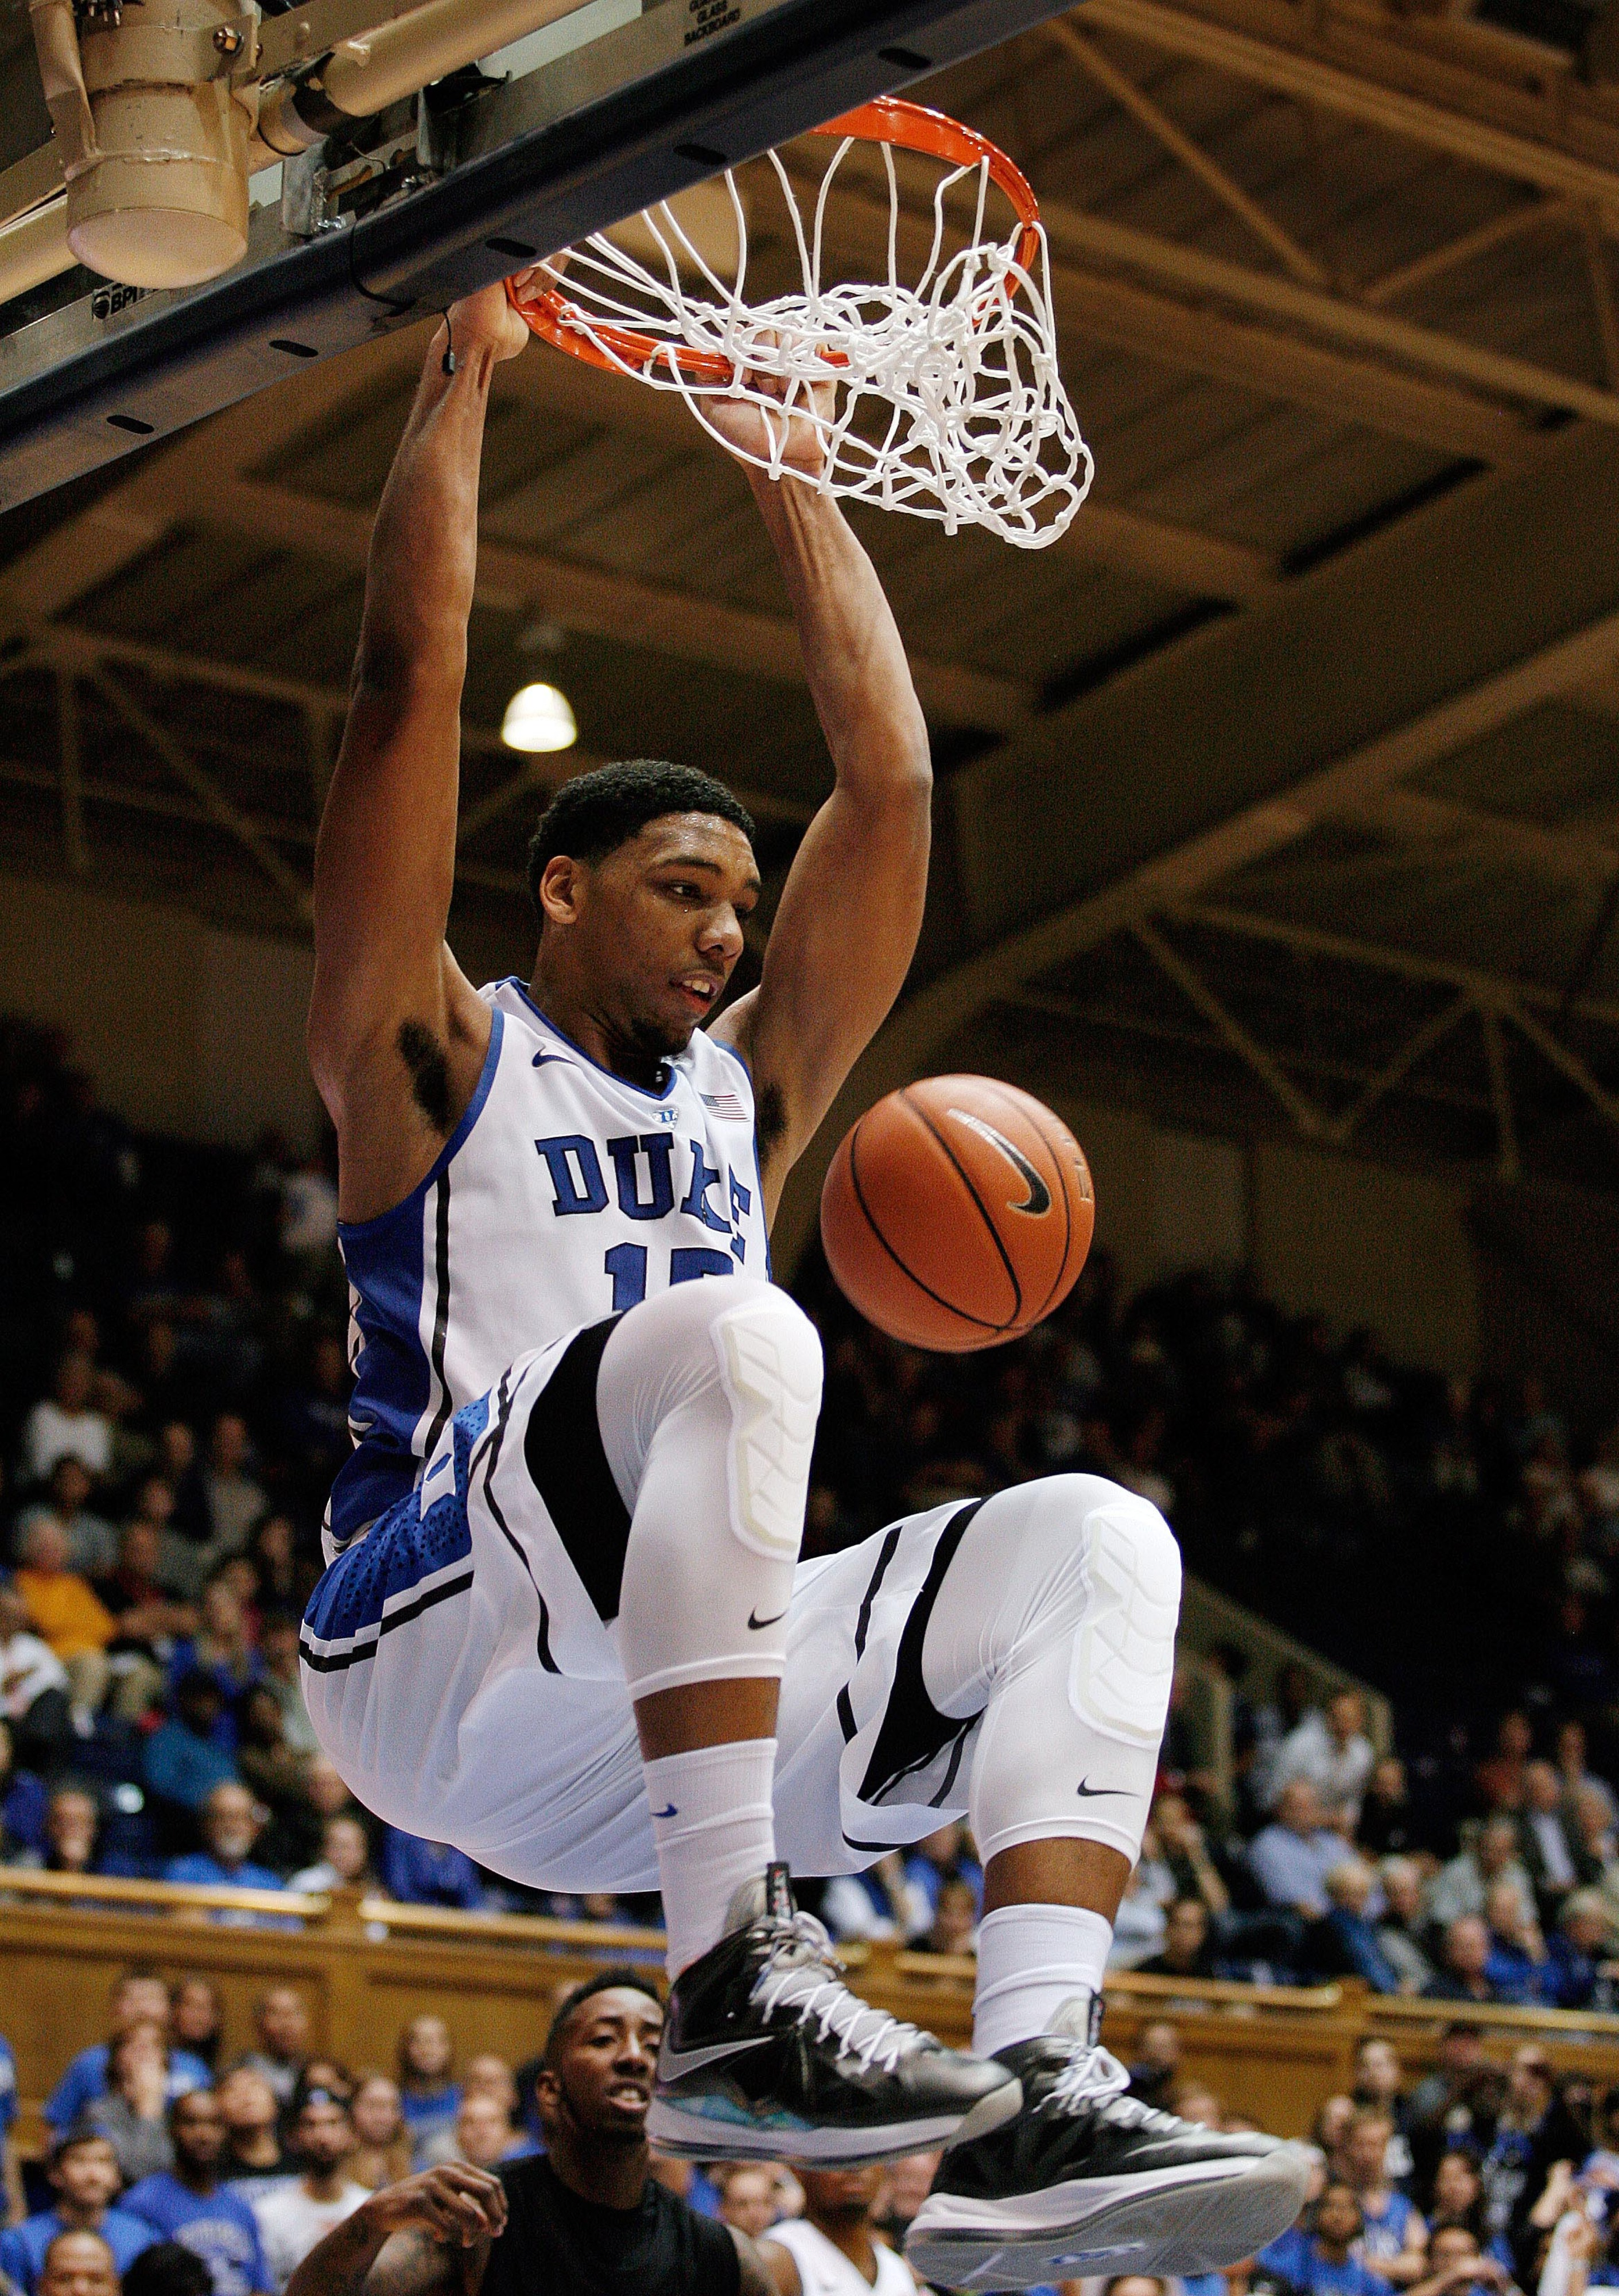 If Jahlil Okafor is as good as advertised, Duke is going to one of the top teams in the nation.